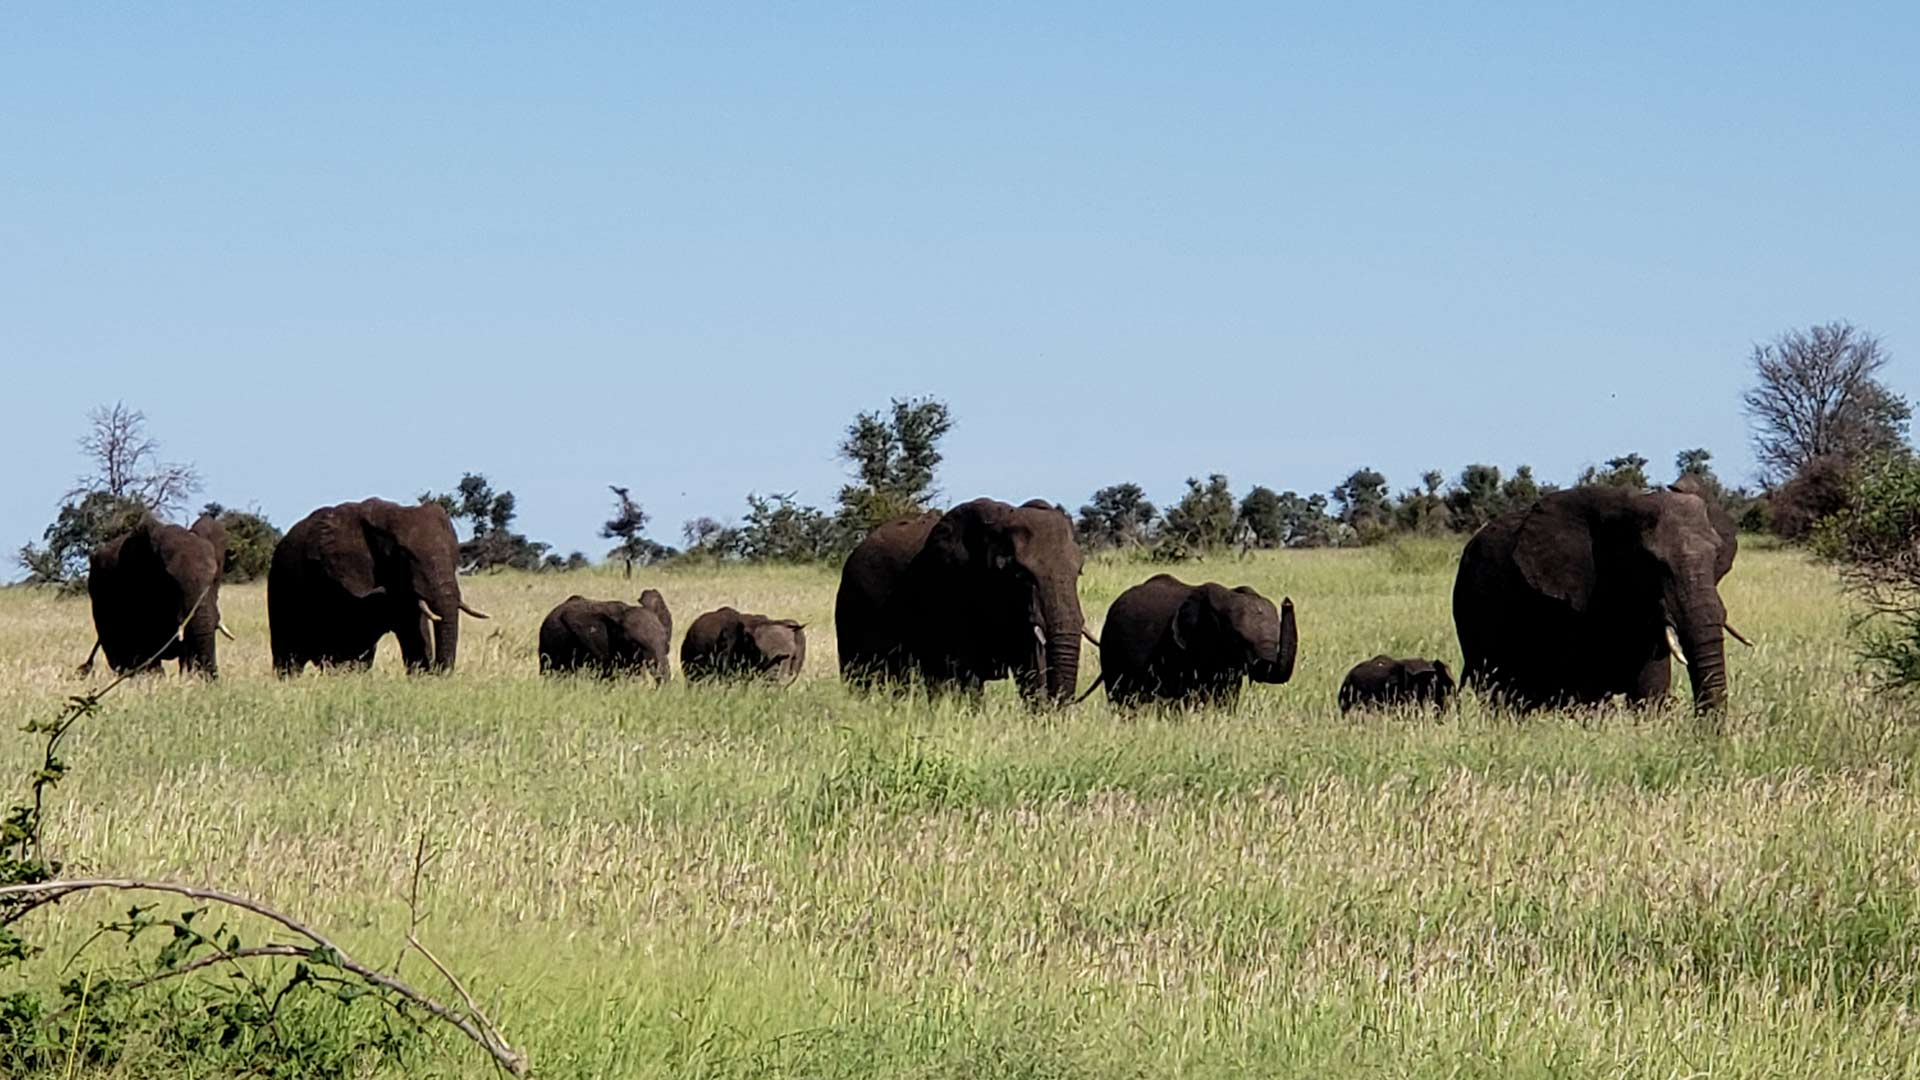 Researchers are studying the the impact of elephant populations on grassland trees and vegetation.